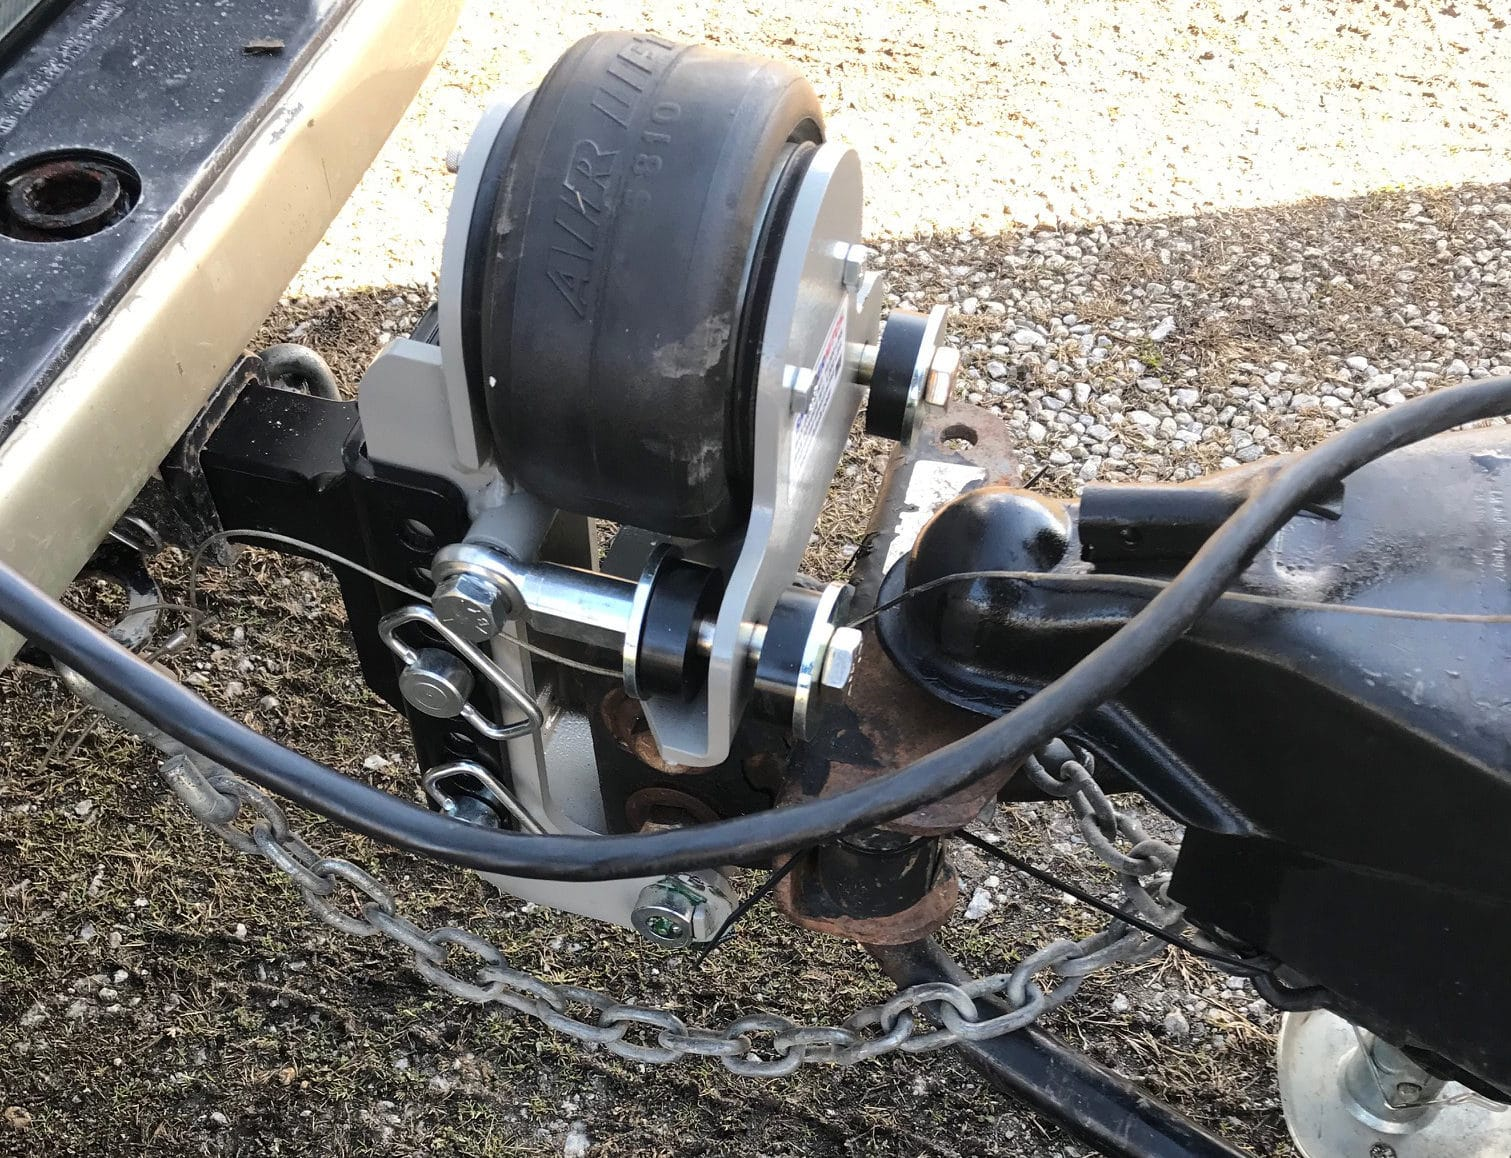 Shocker Air Equalizer Hitch in Action